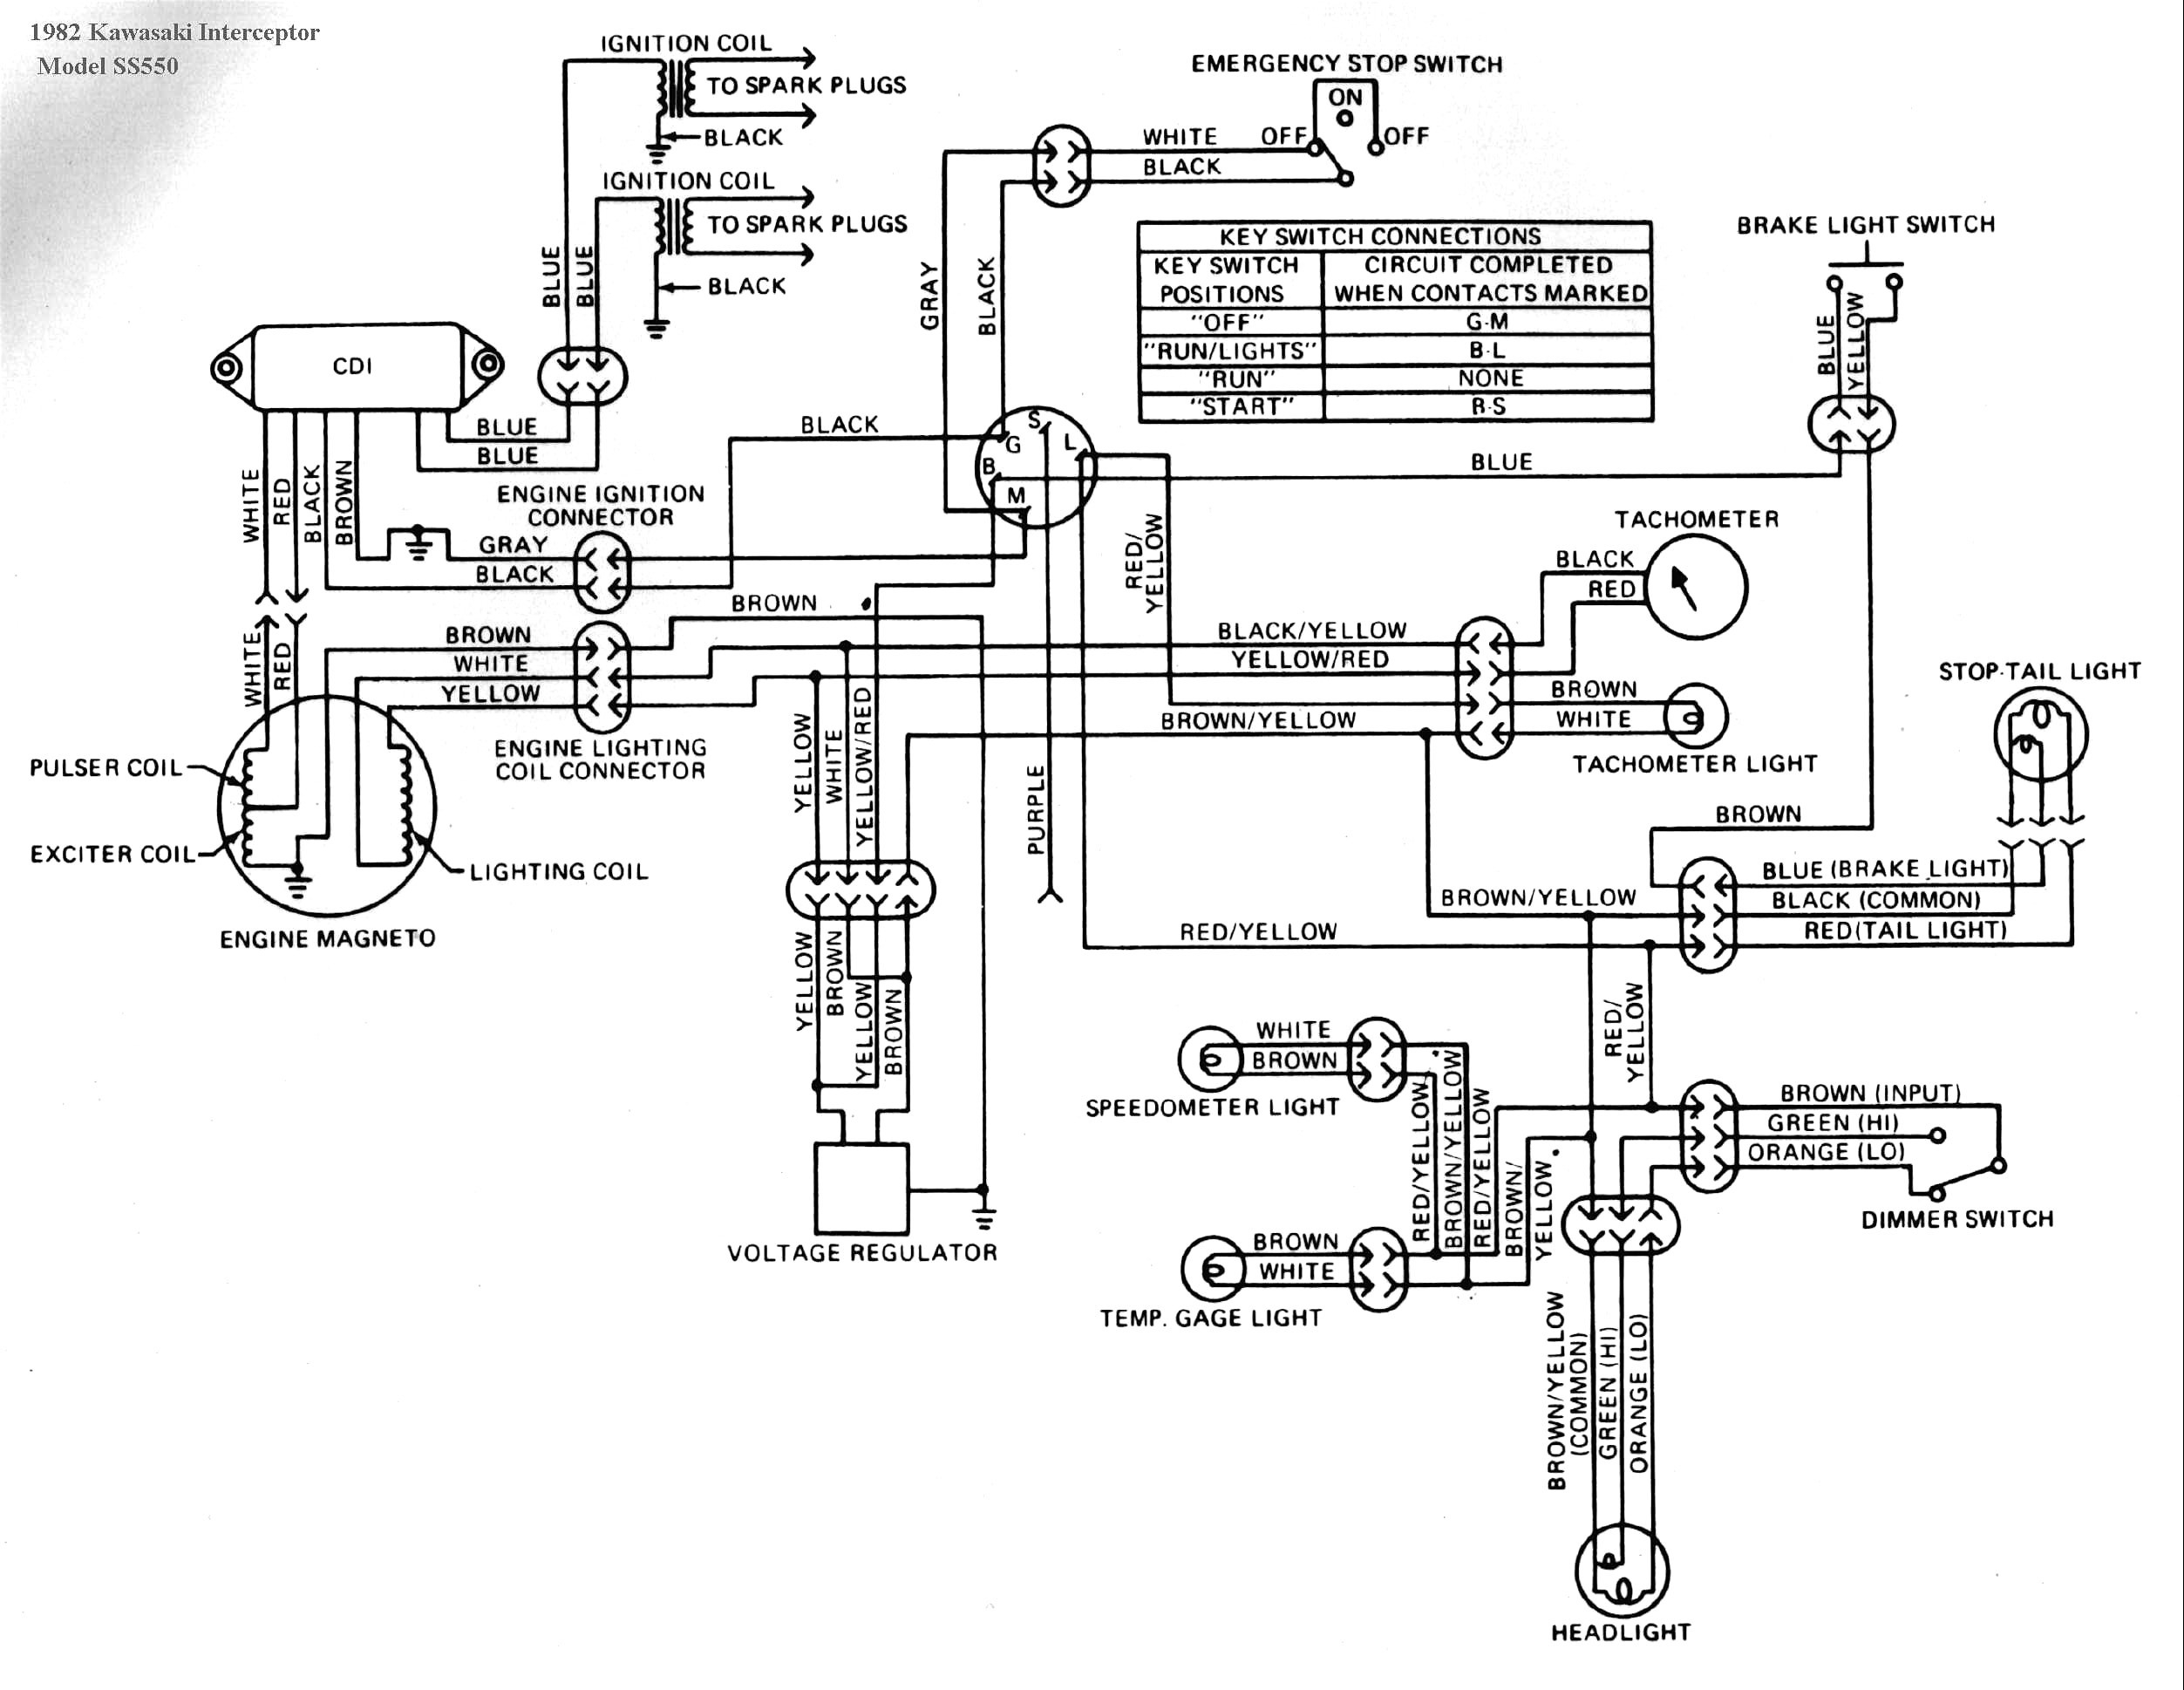 kawasaki mule 550 wiring diagram electrical wiring diagram symbolskawasaki mule 1000 electrical schematic wiring diagram librarykawasaki mule 1000 wiring diagram wiring diagram kawasaki mule